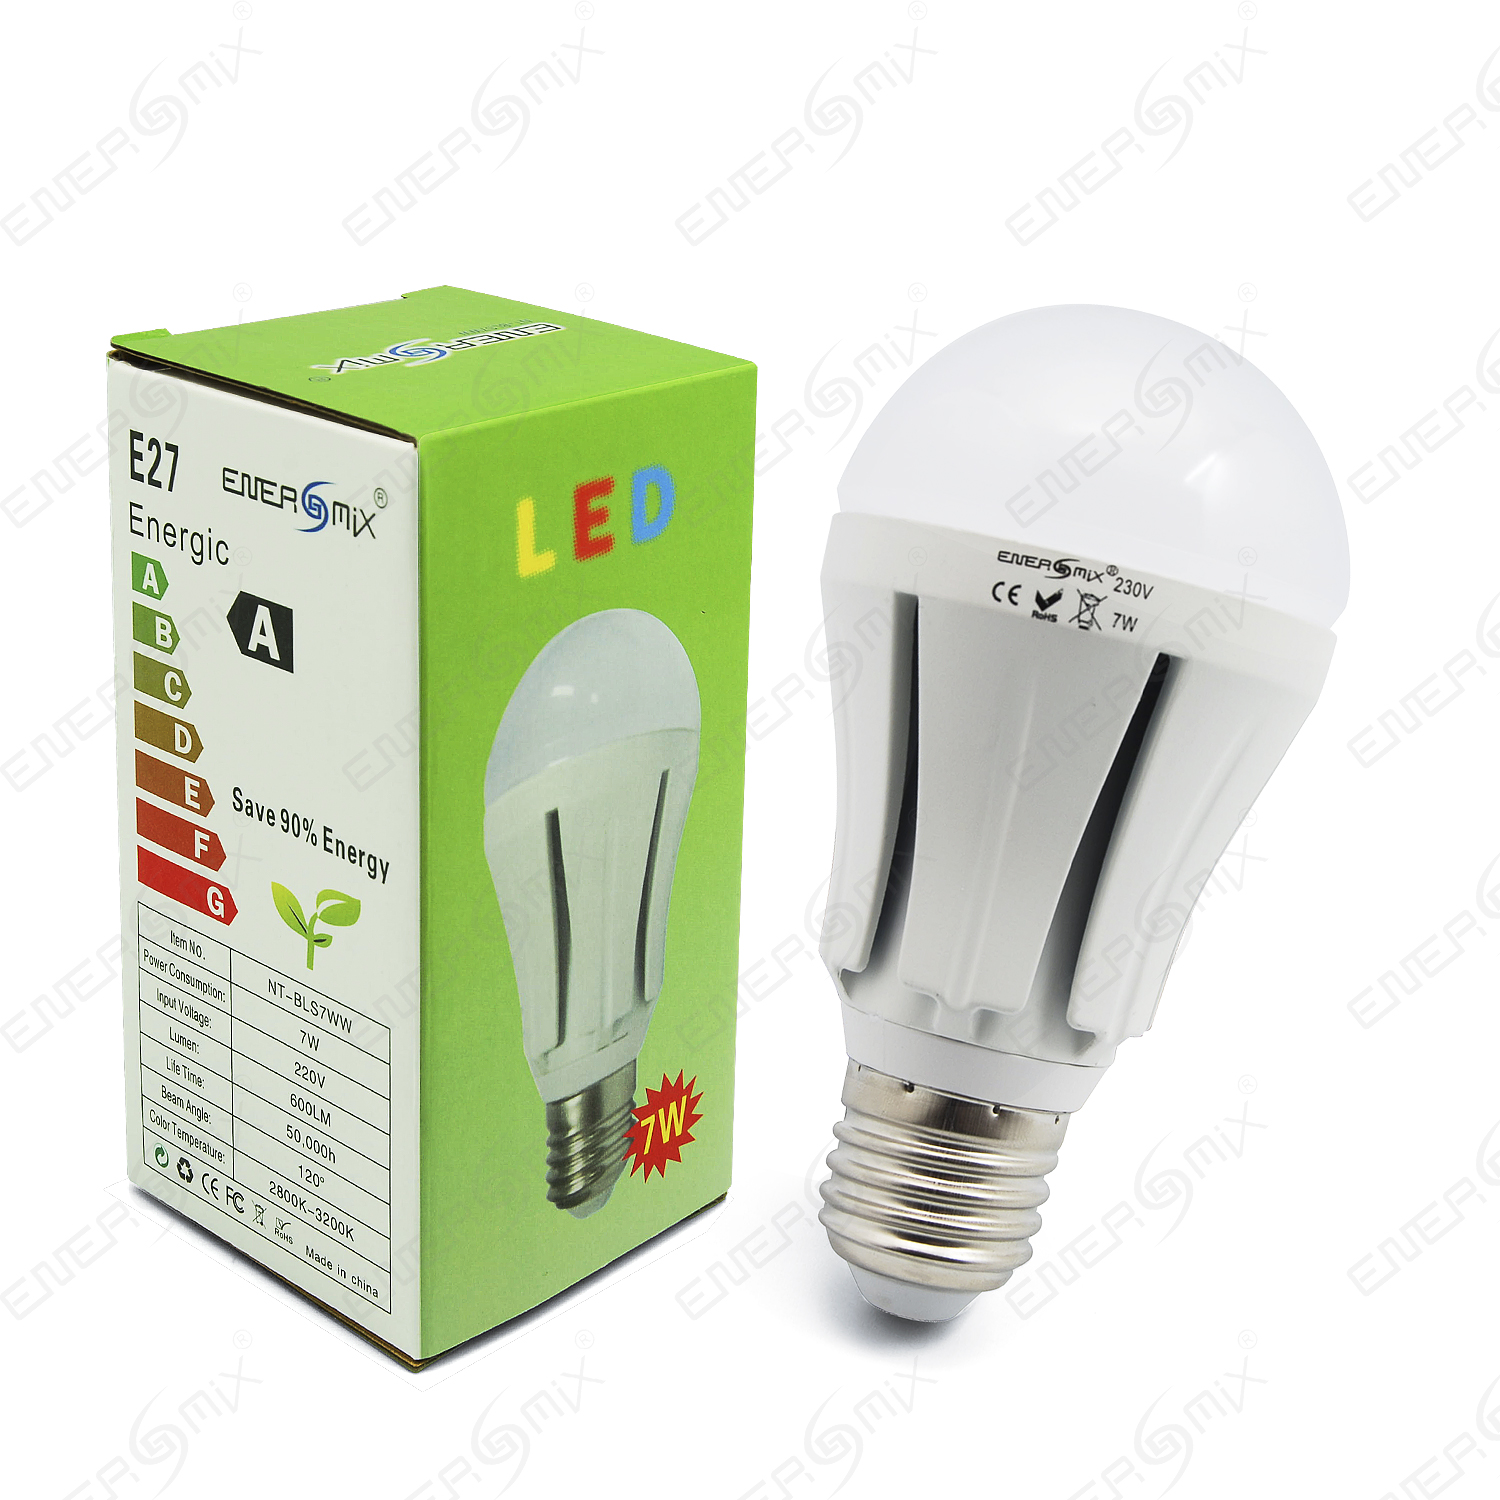 energmix e27 led lampe led birne leuchtmittel bulb. Black Bedroom Furniture Sets. Home Design Ideas